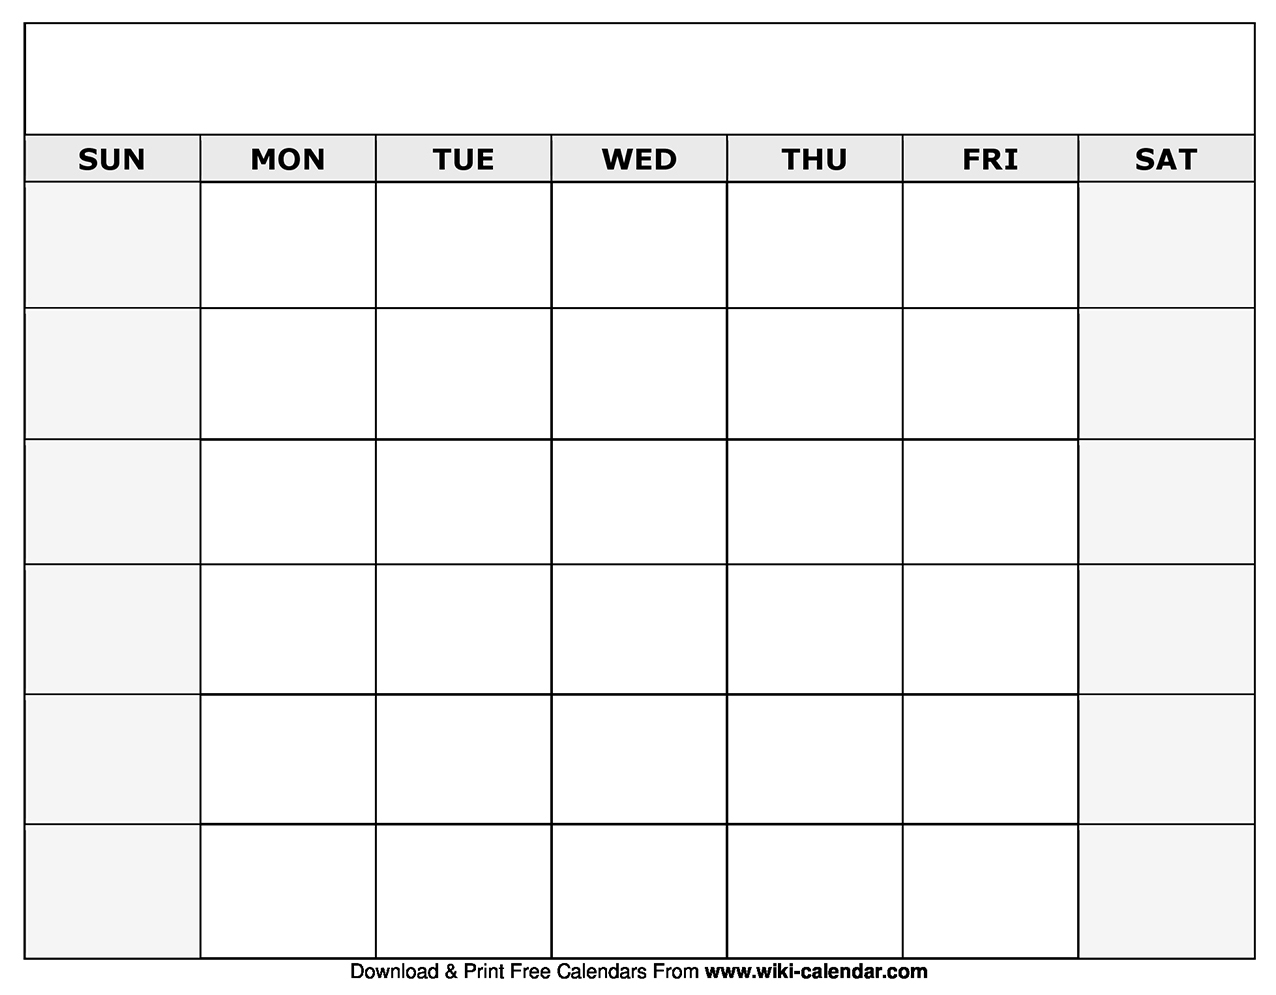 Printable Blank Calendar Templates pertaining to Blank Calendar With Only Weekdays